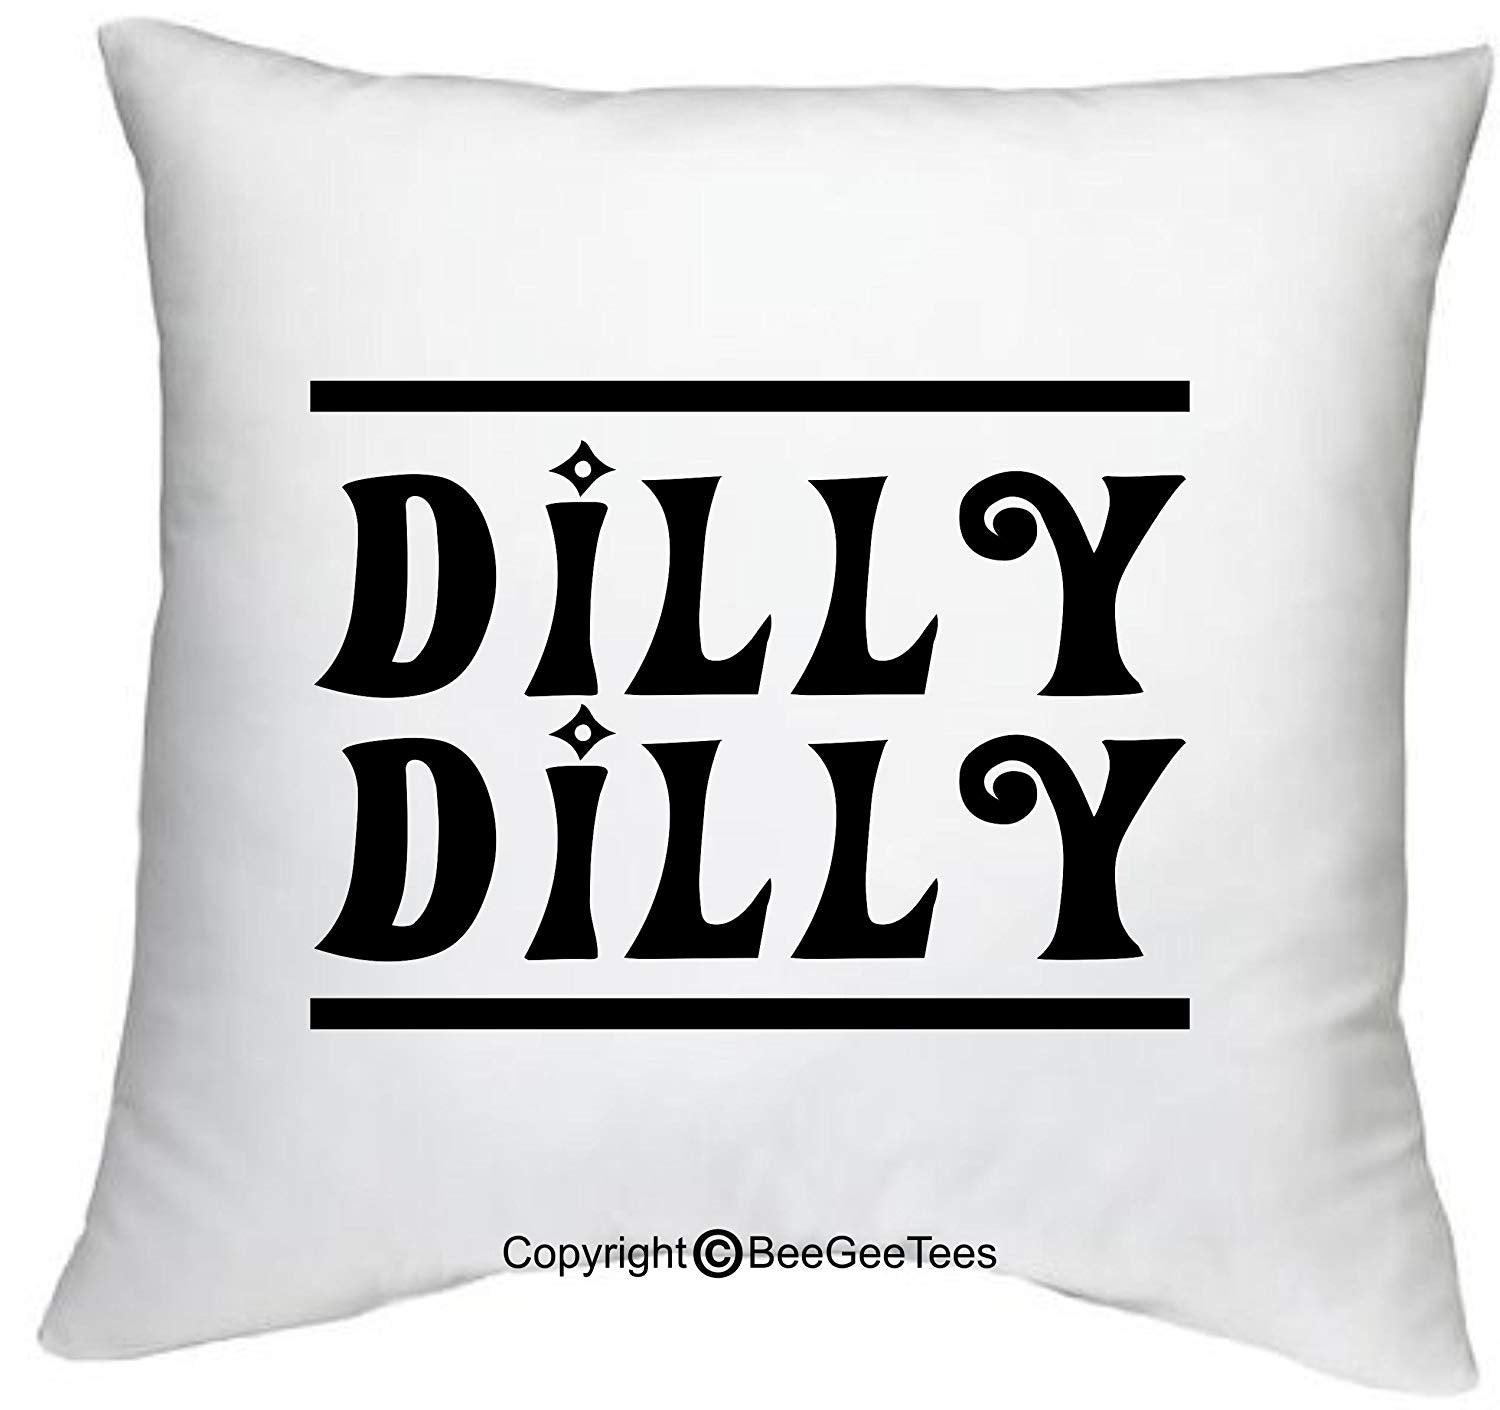 "Dilly Dilly Bud Light Parody Game of Thrones Inspired 18"" x 18"" Zippered Pillow Cover by BeeGeeTees"